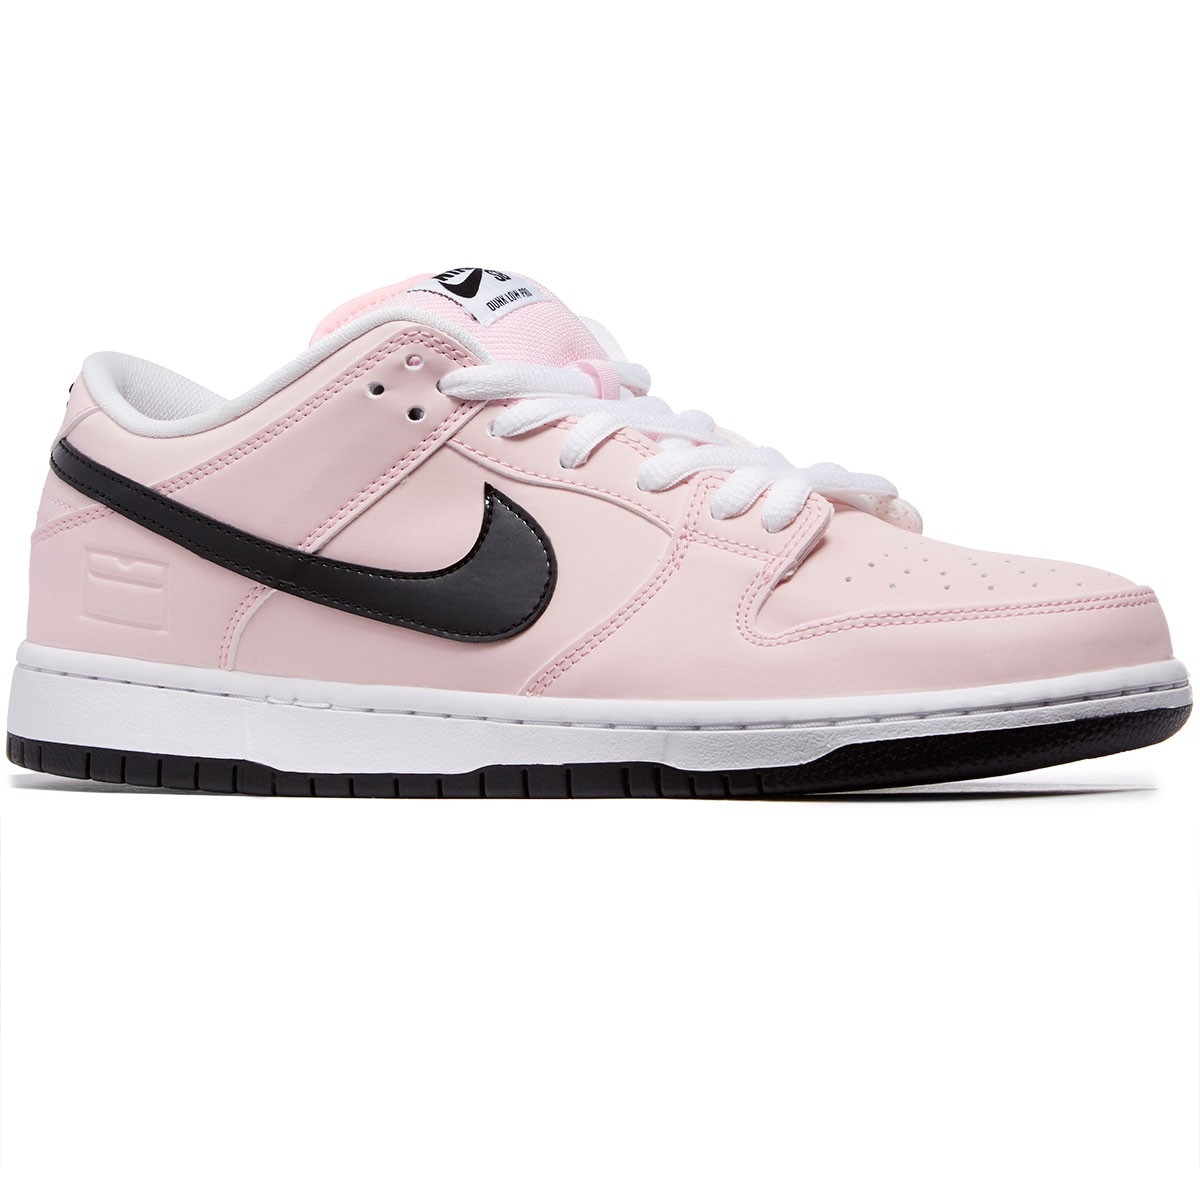 3e0b40d8700f Nike SB Pink Box Dunk Low Elite Shoes - Prism Pink Black White -